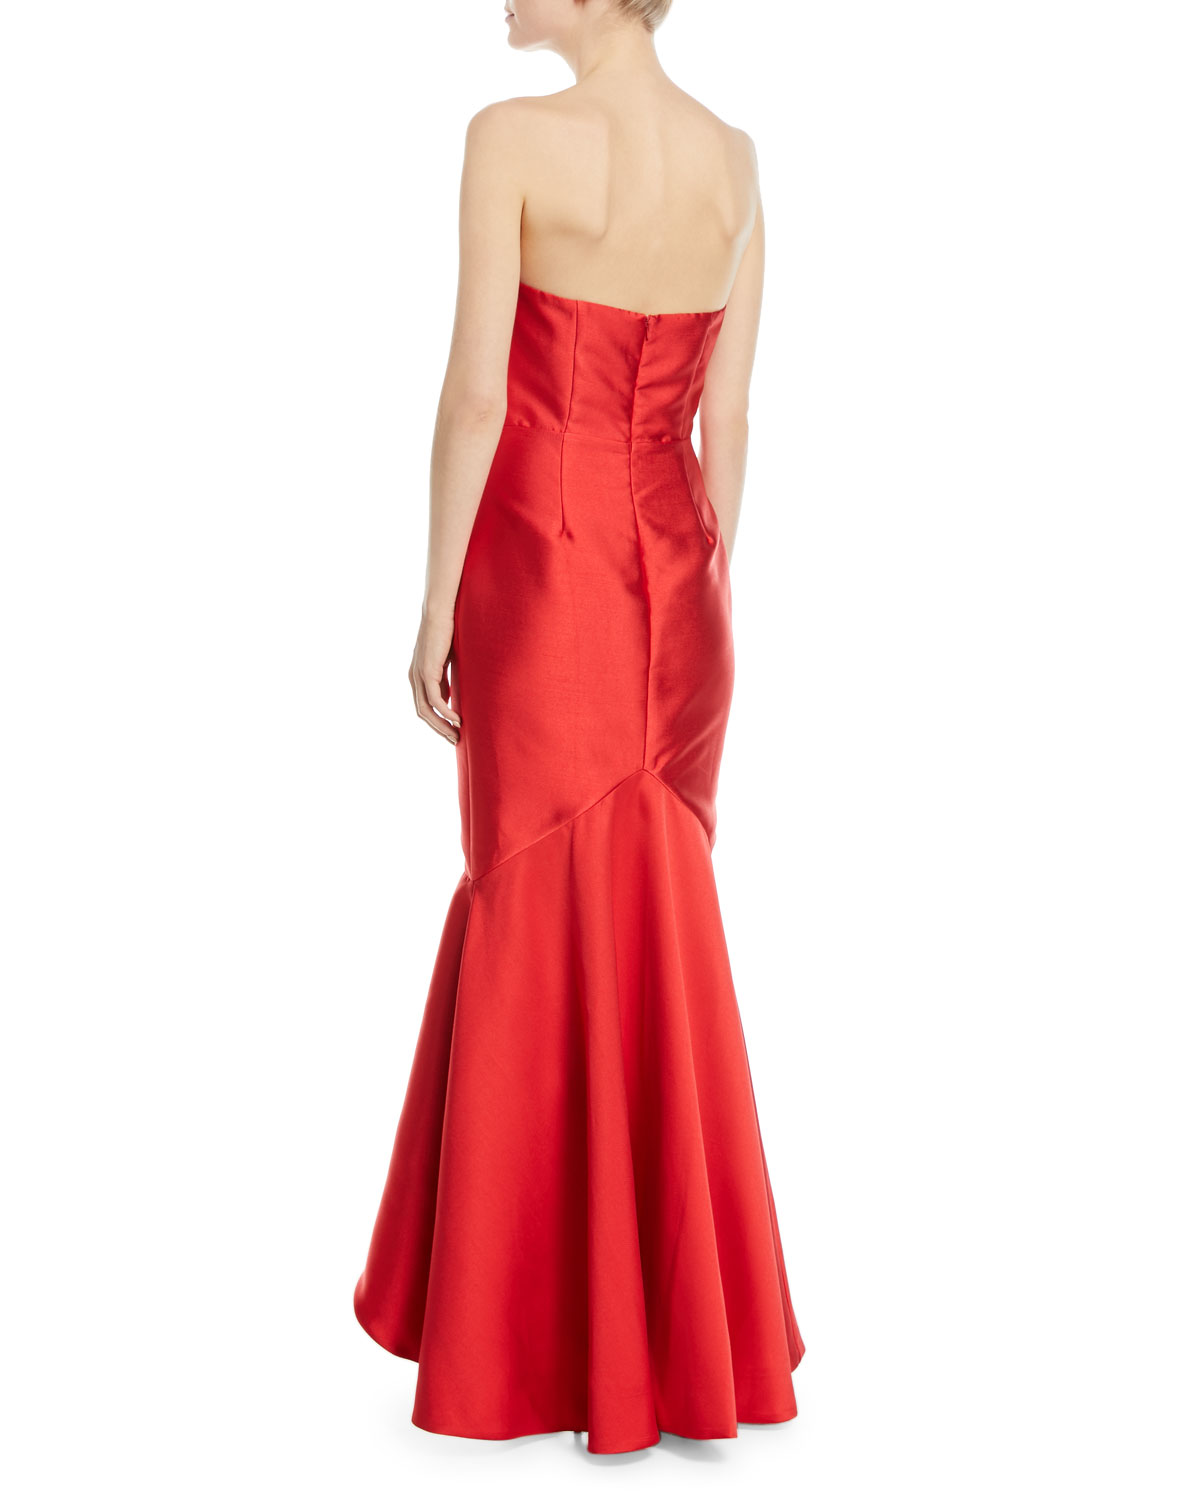 025afdc55320 Fame and Partners The Seller Twill Strapless Bustier Gown w/ Side Ruffle |  Neiman Marcus